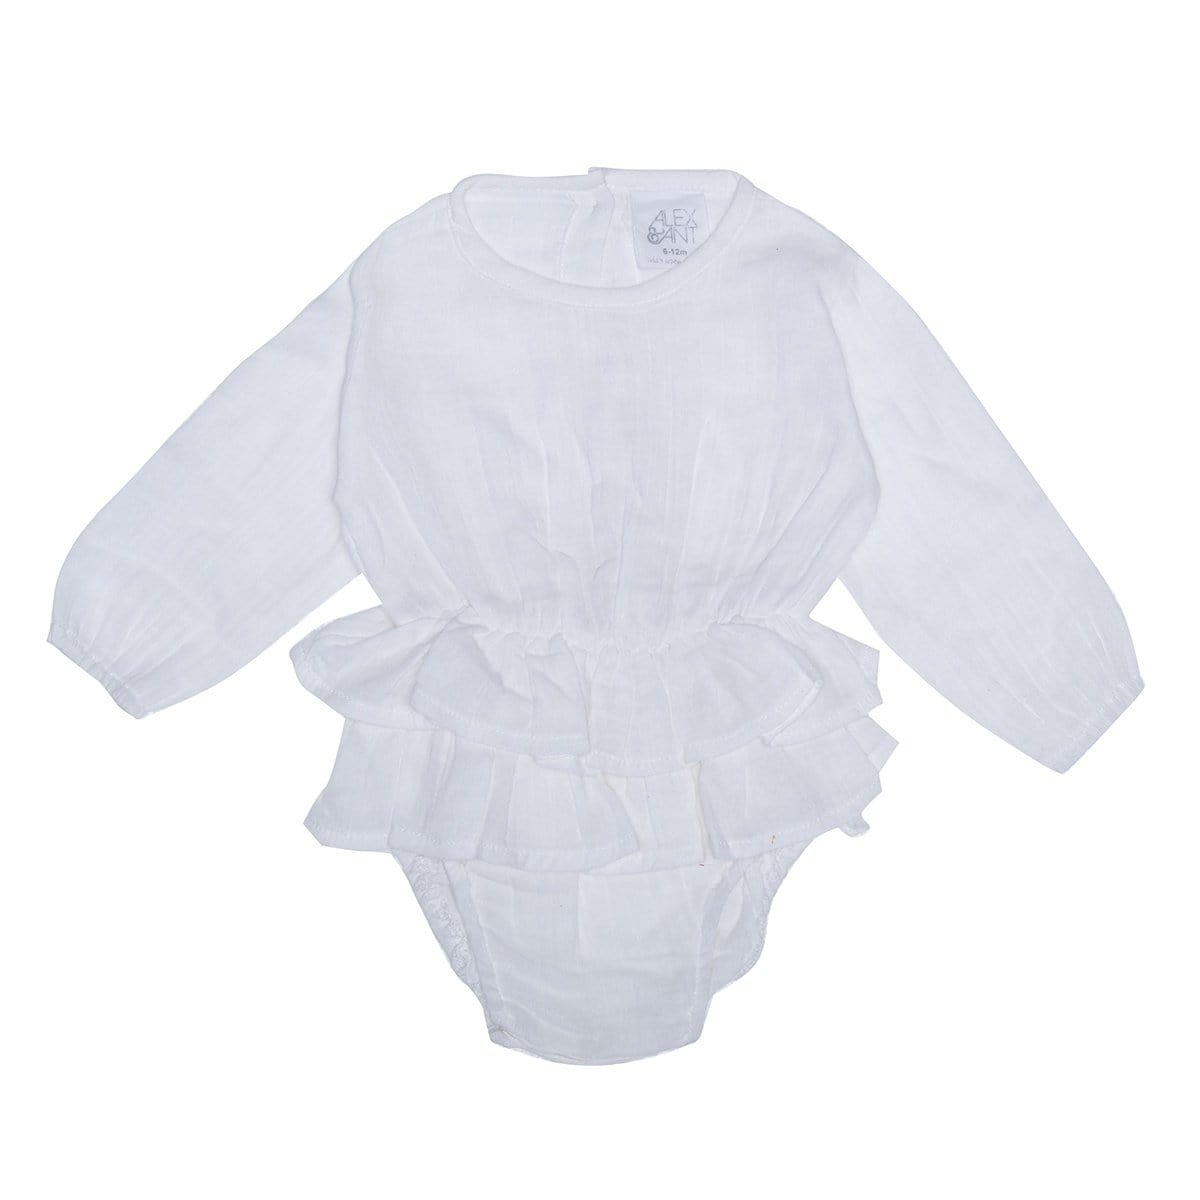 Alex and Ant Gia Playsuit - Pearl